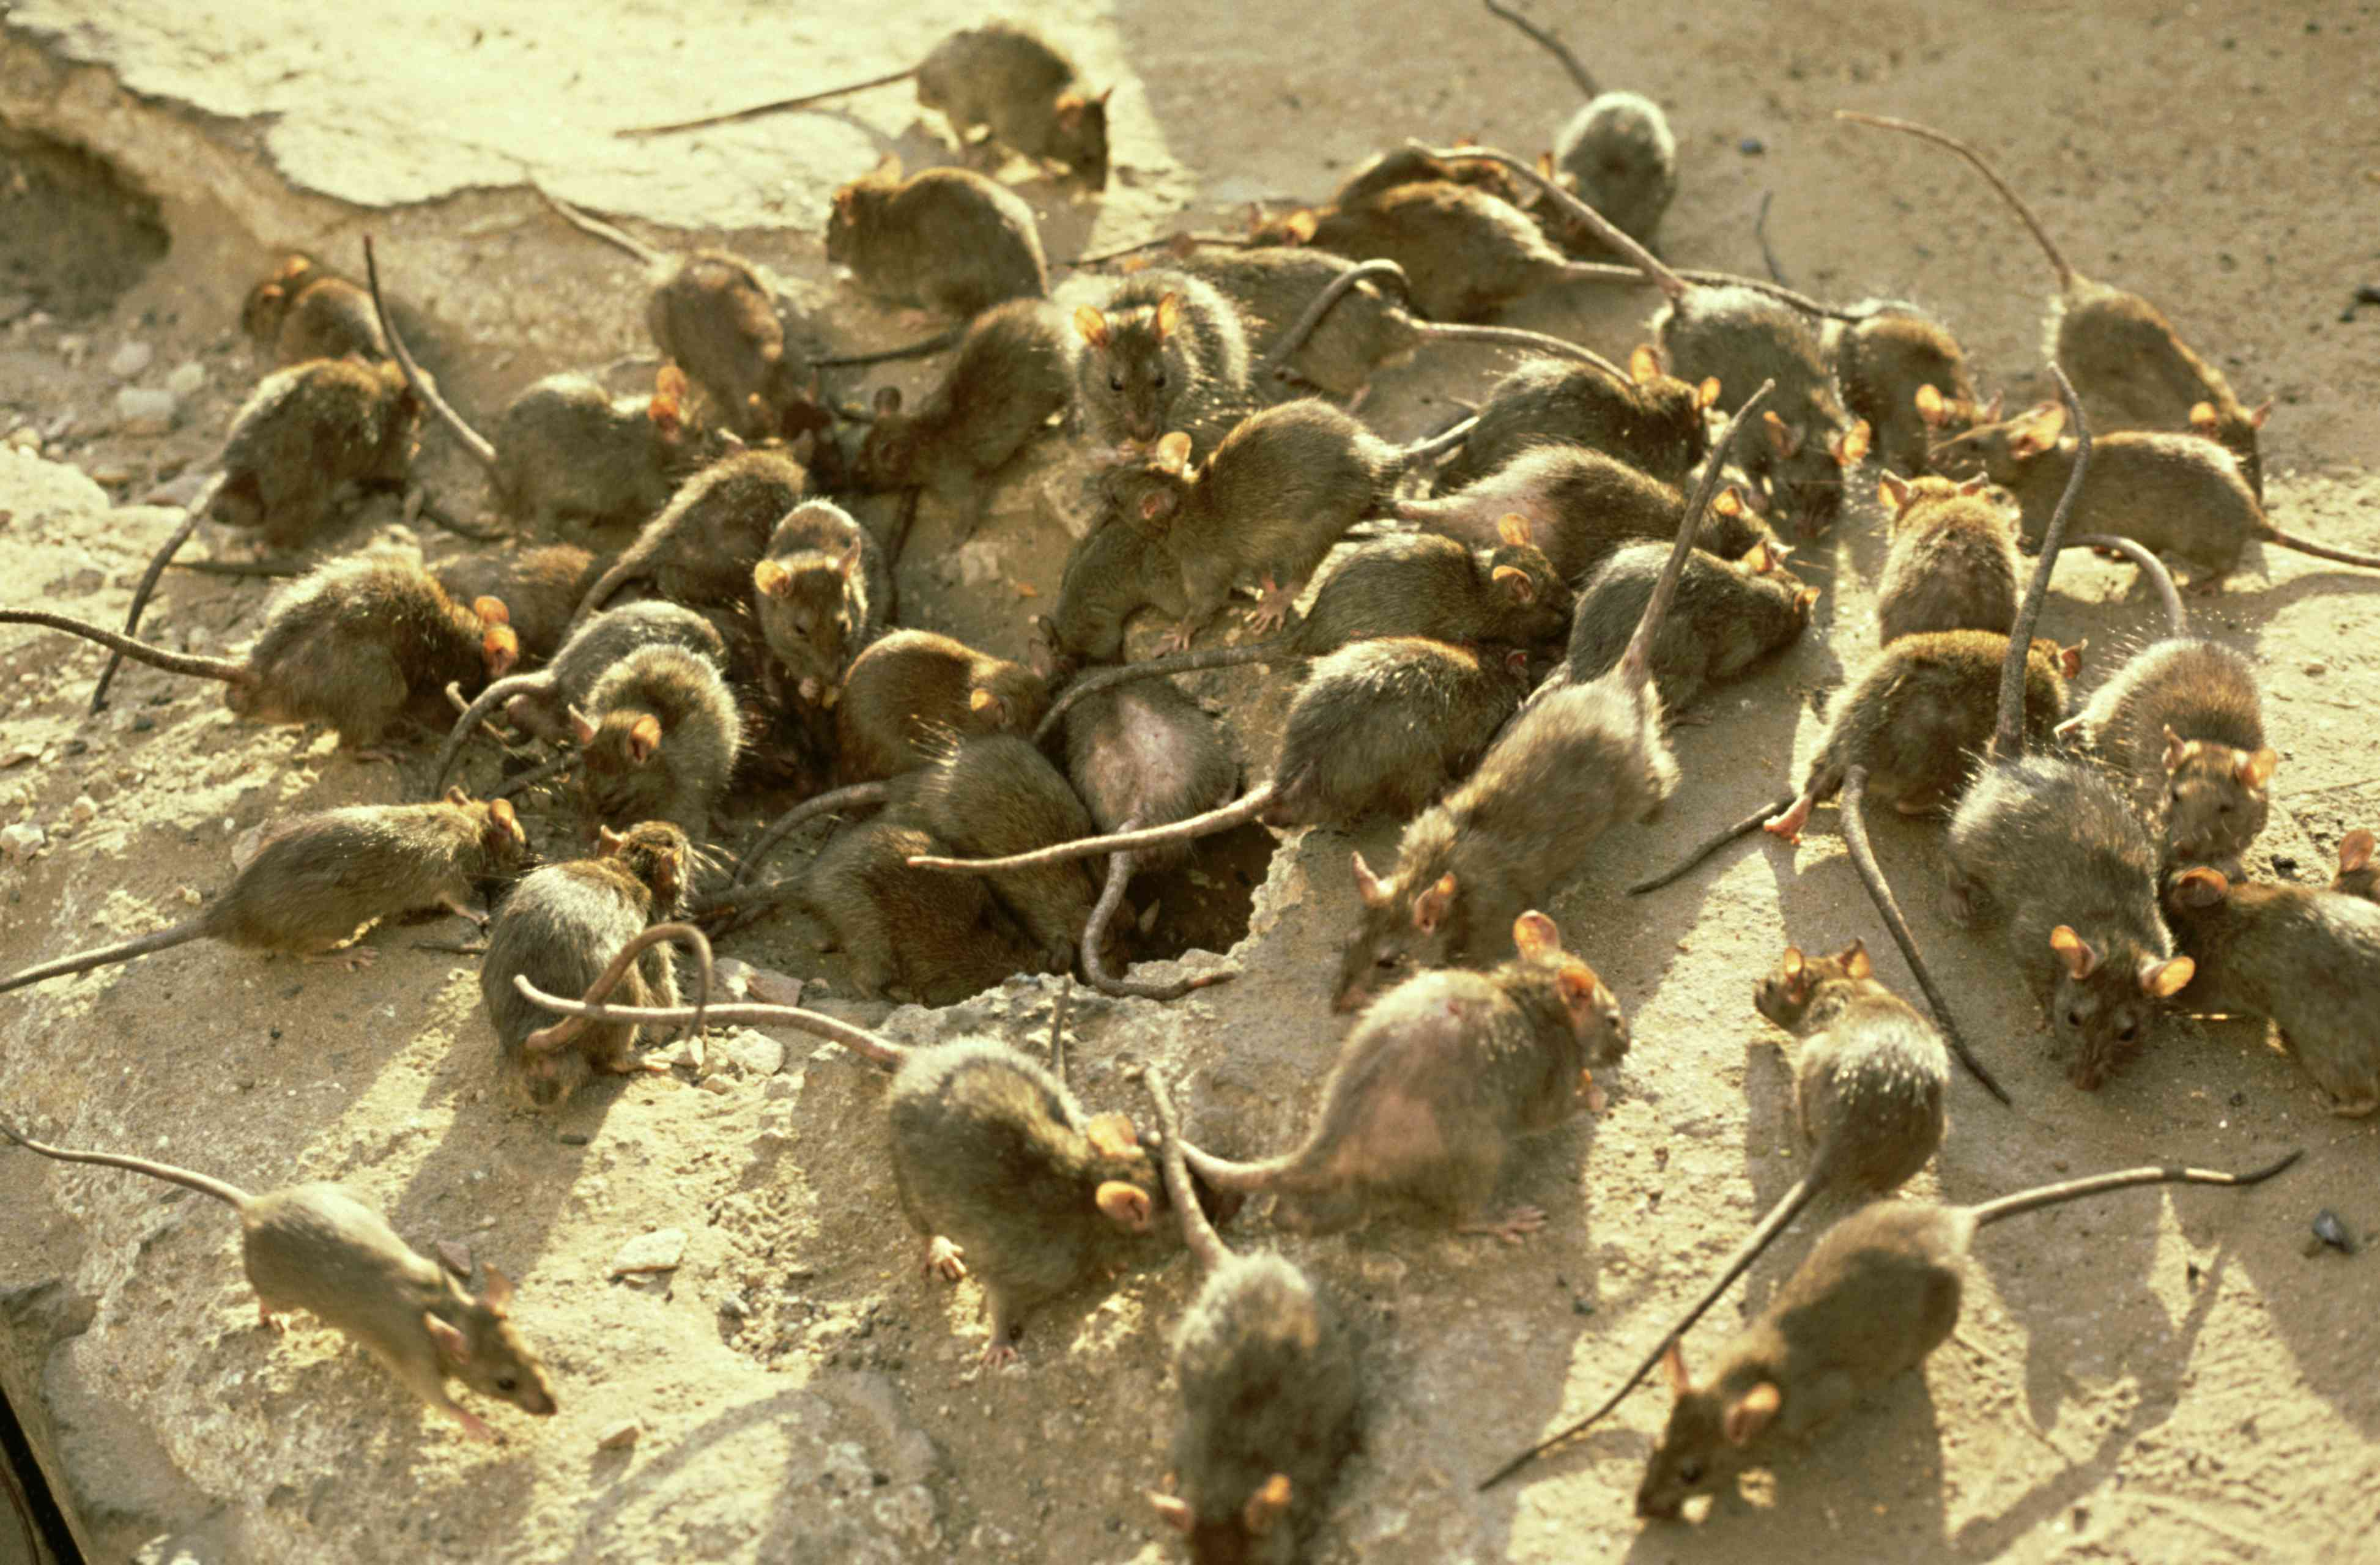 large group of grey rats on ground stripped of vegetation